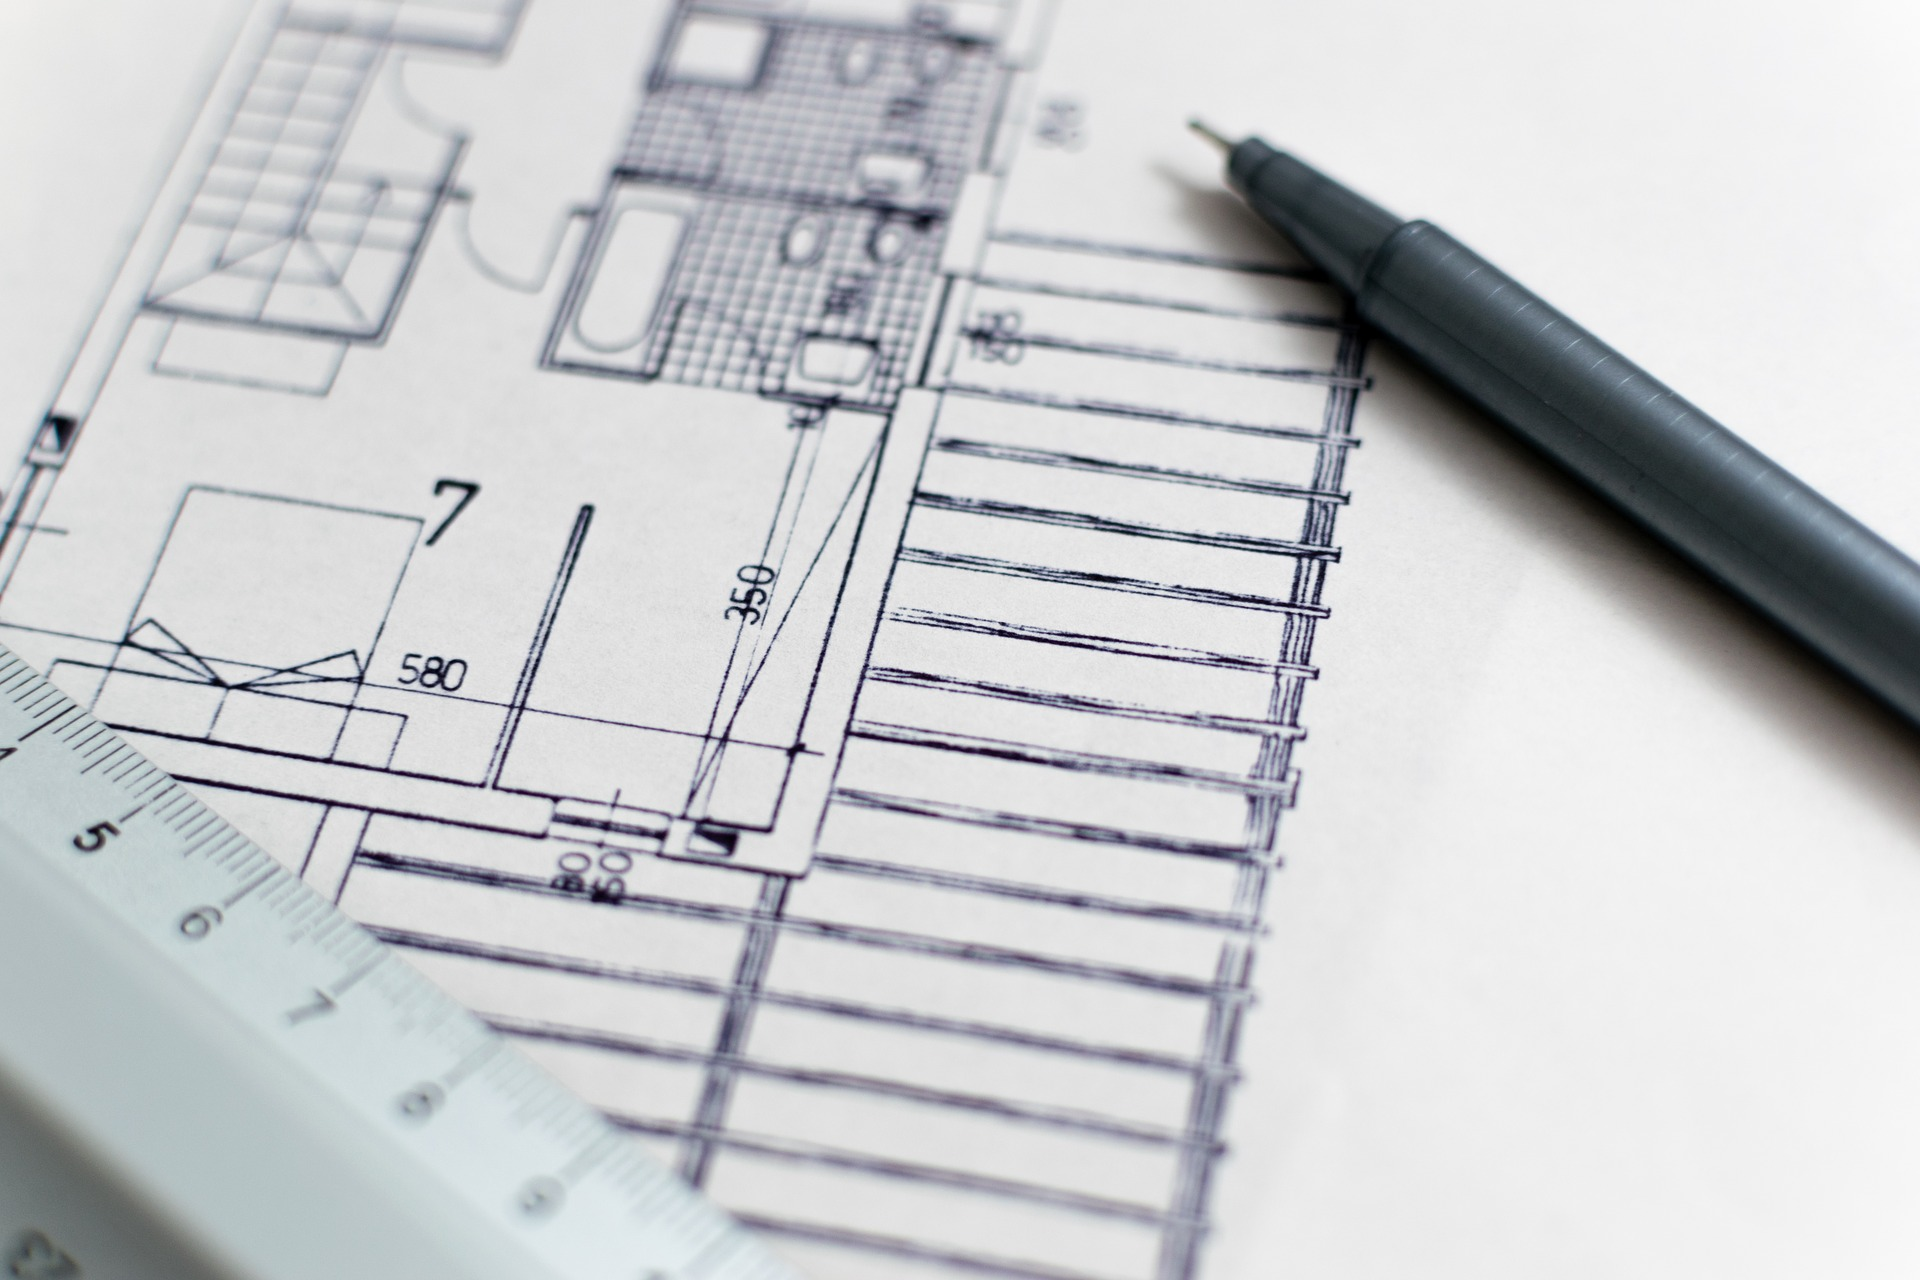 How Much of Your Home Building Budget Goes to an Architect?